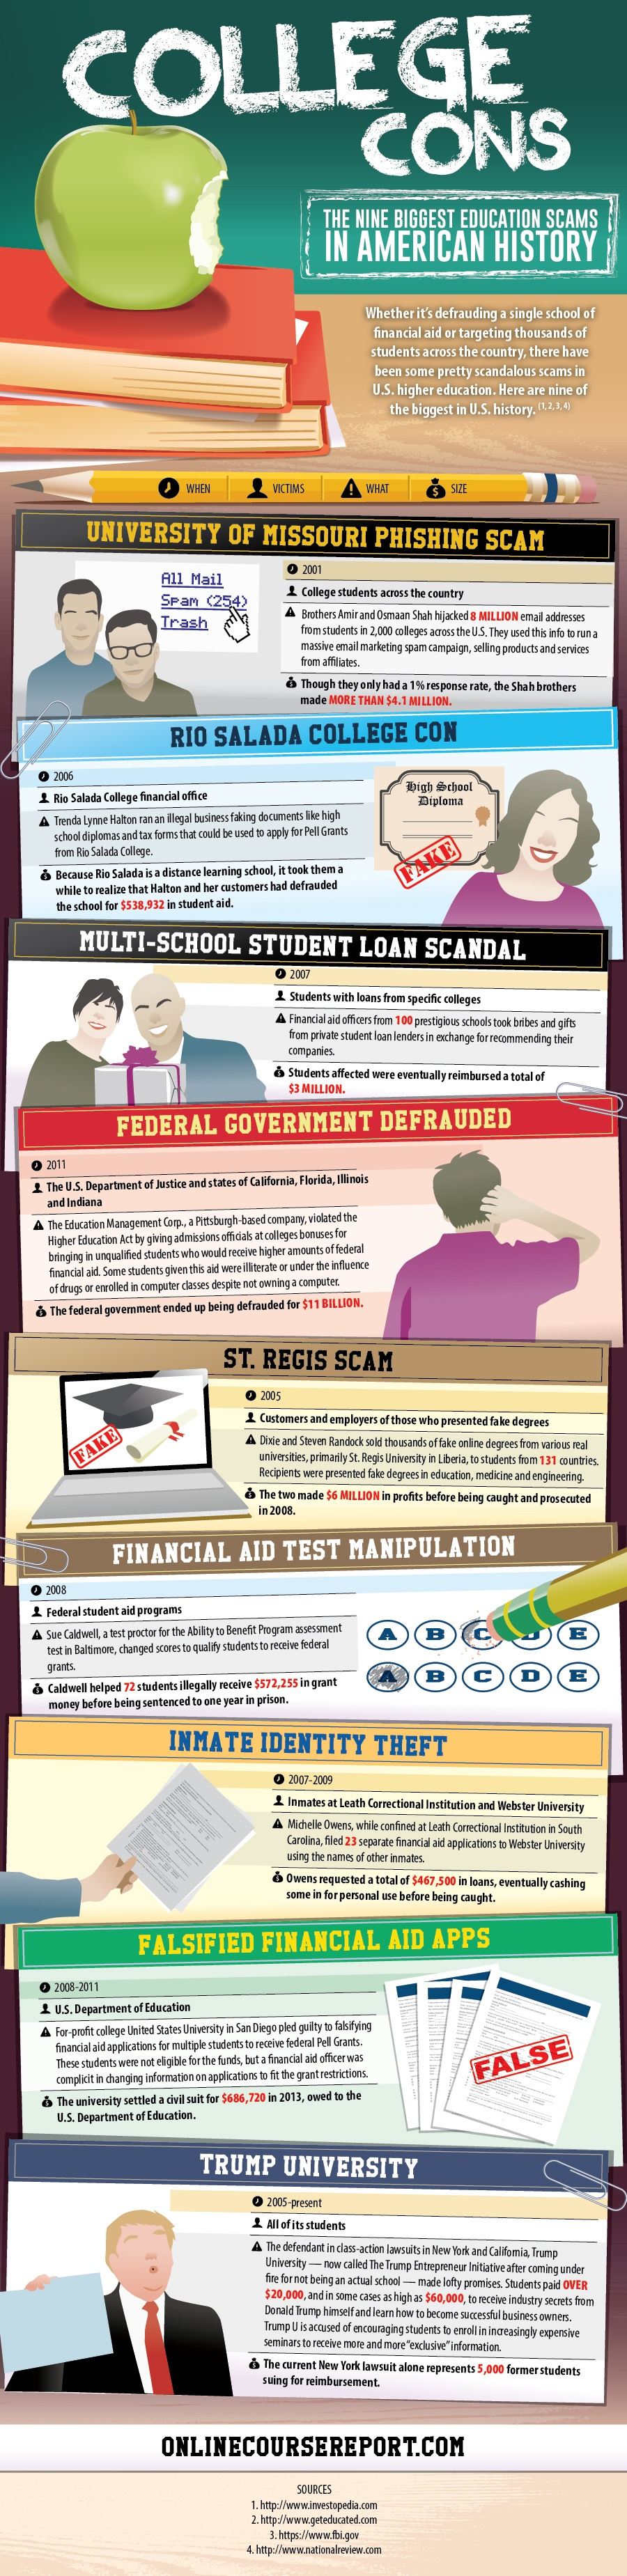 College Cons: The Nine Biggest Education Scams in American History Infographic